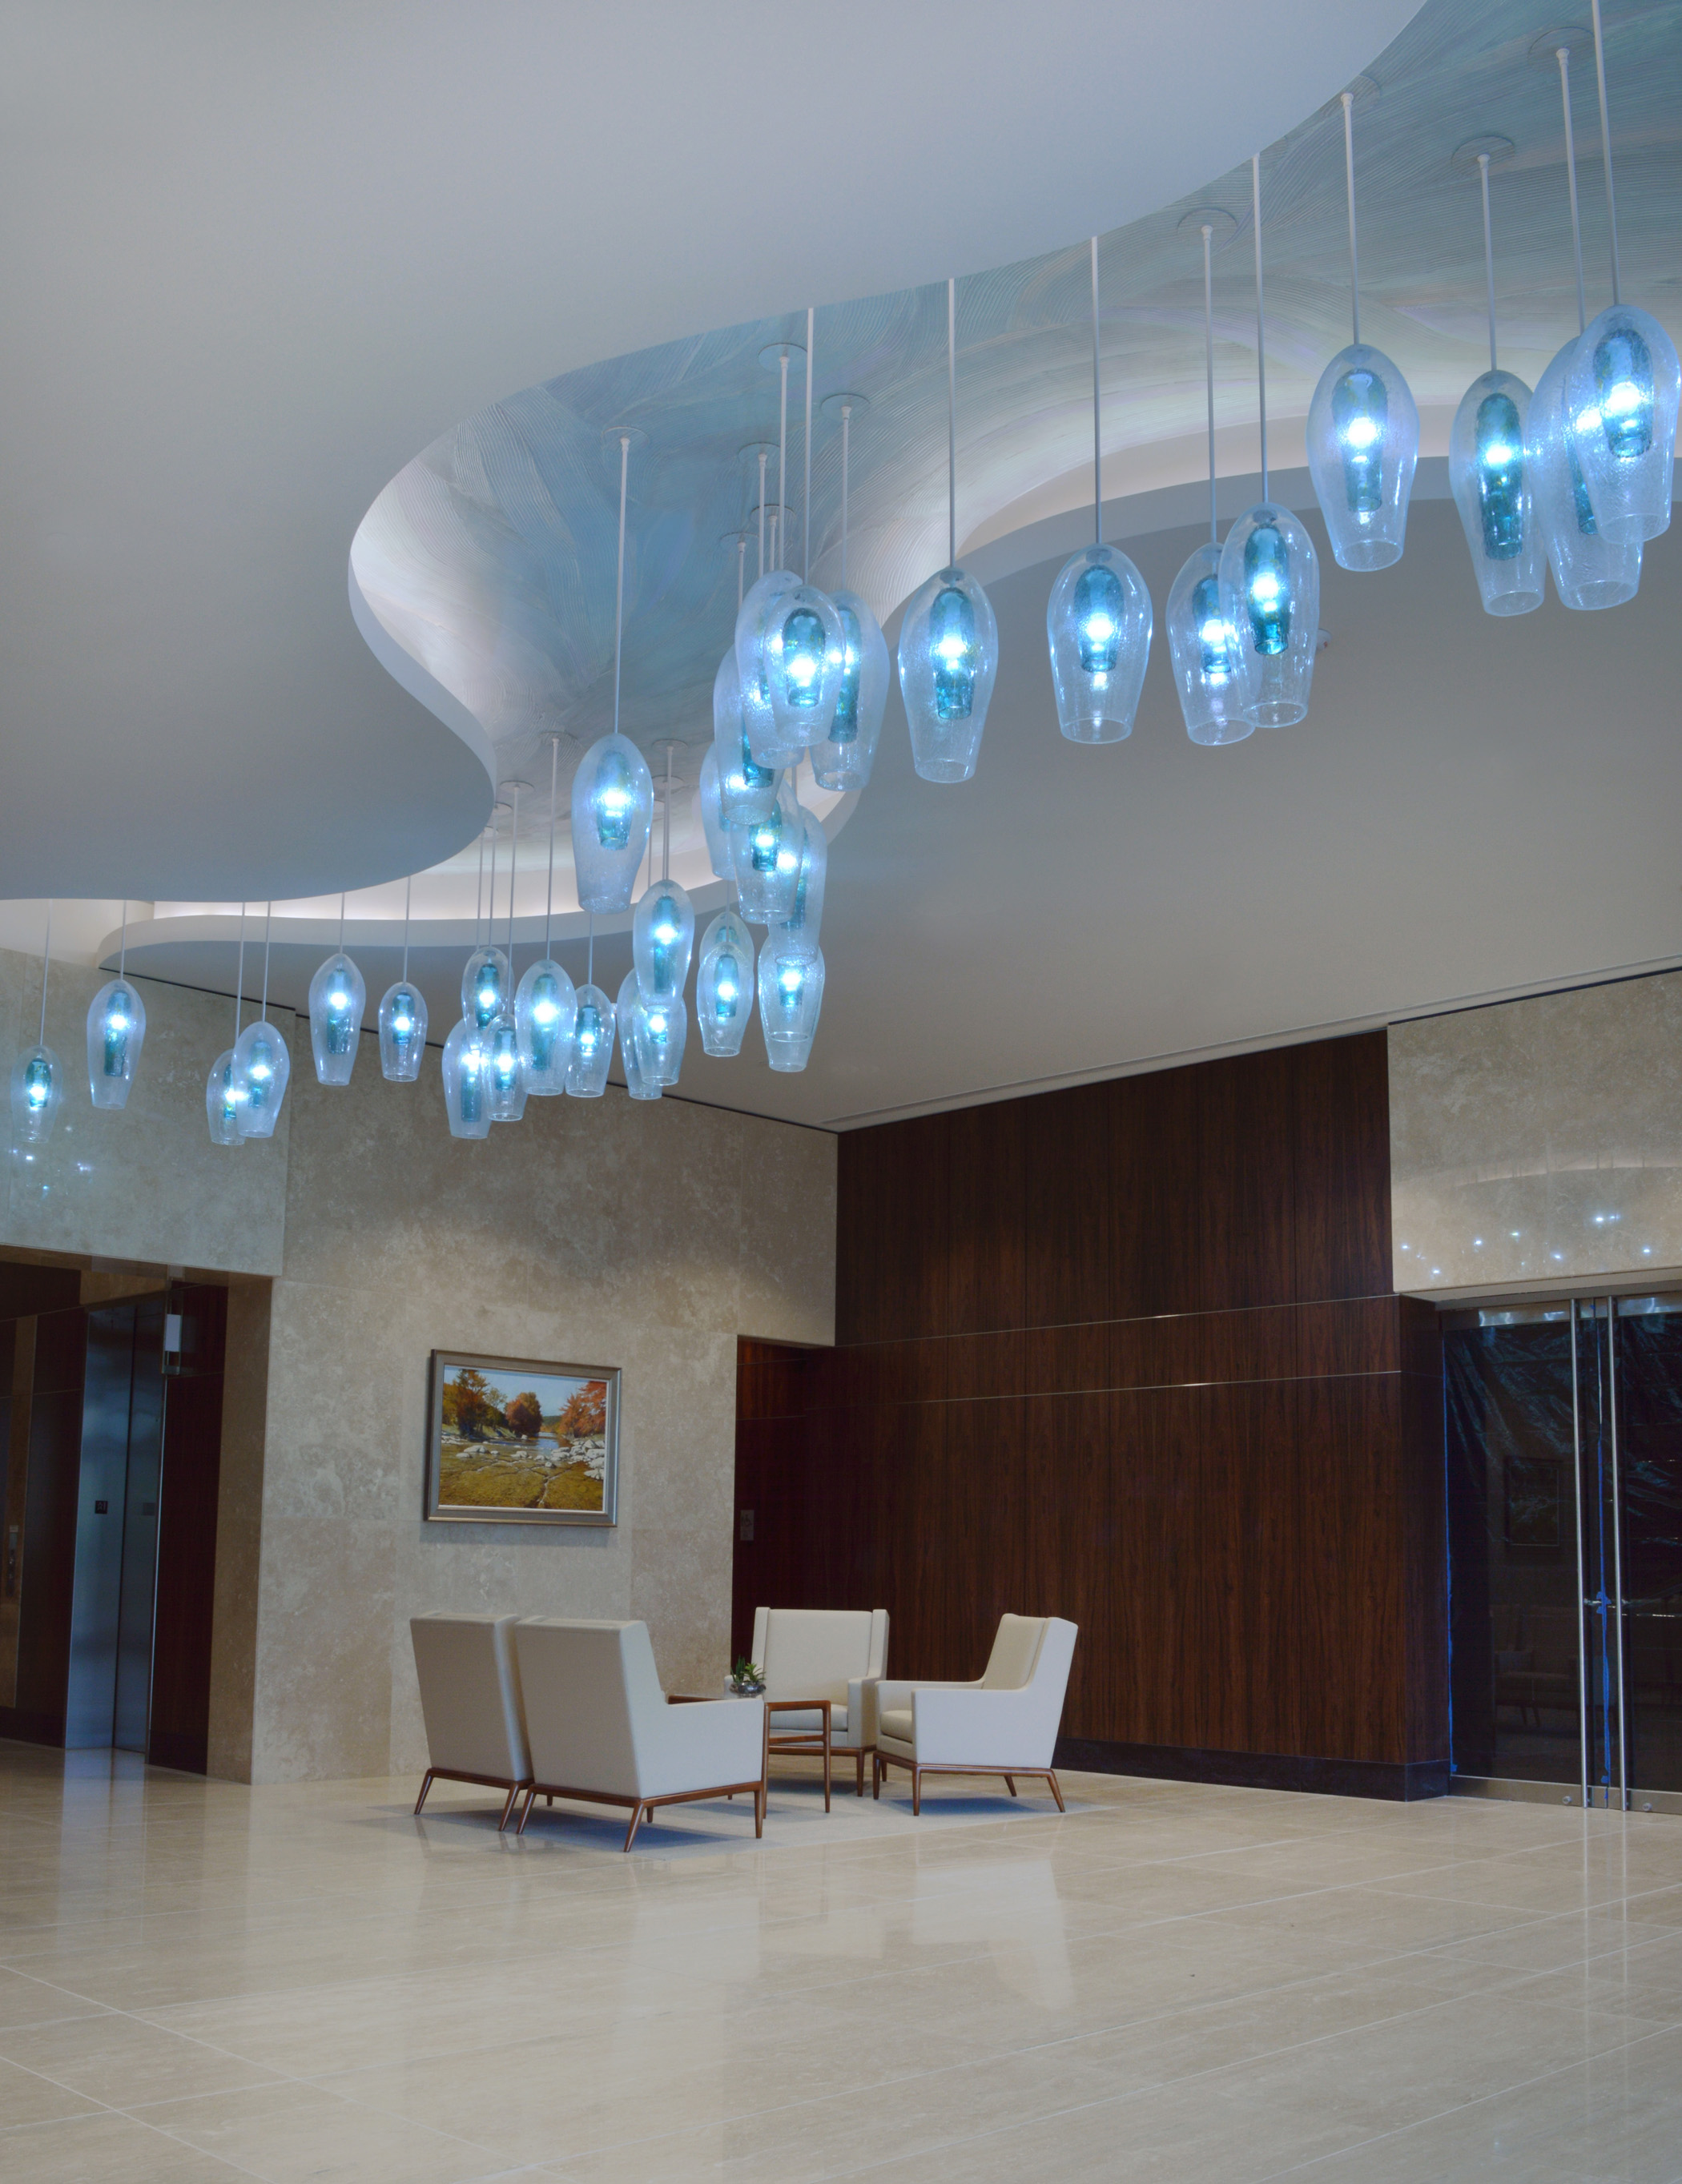 Wimberley Glassworks Briarpark Houston Blown Glass Lighting Installation North Lobby up view for web (2).jpg